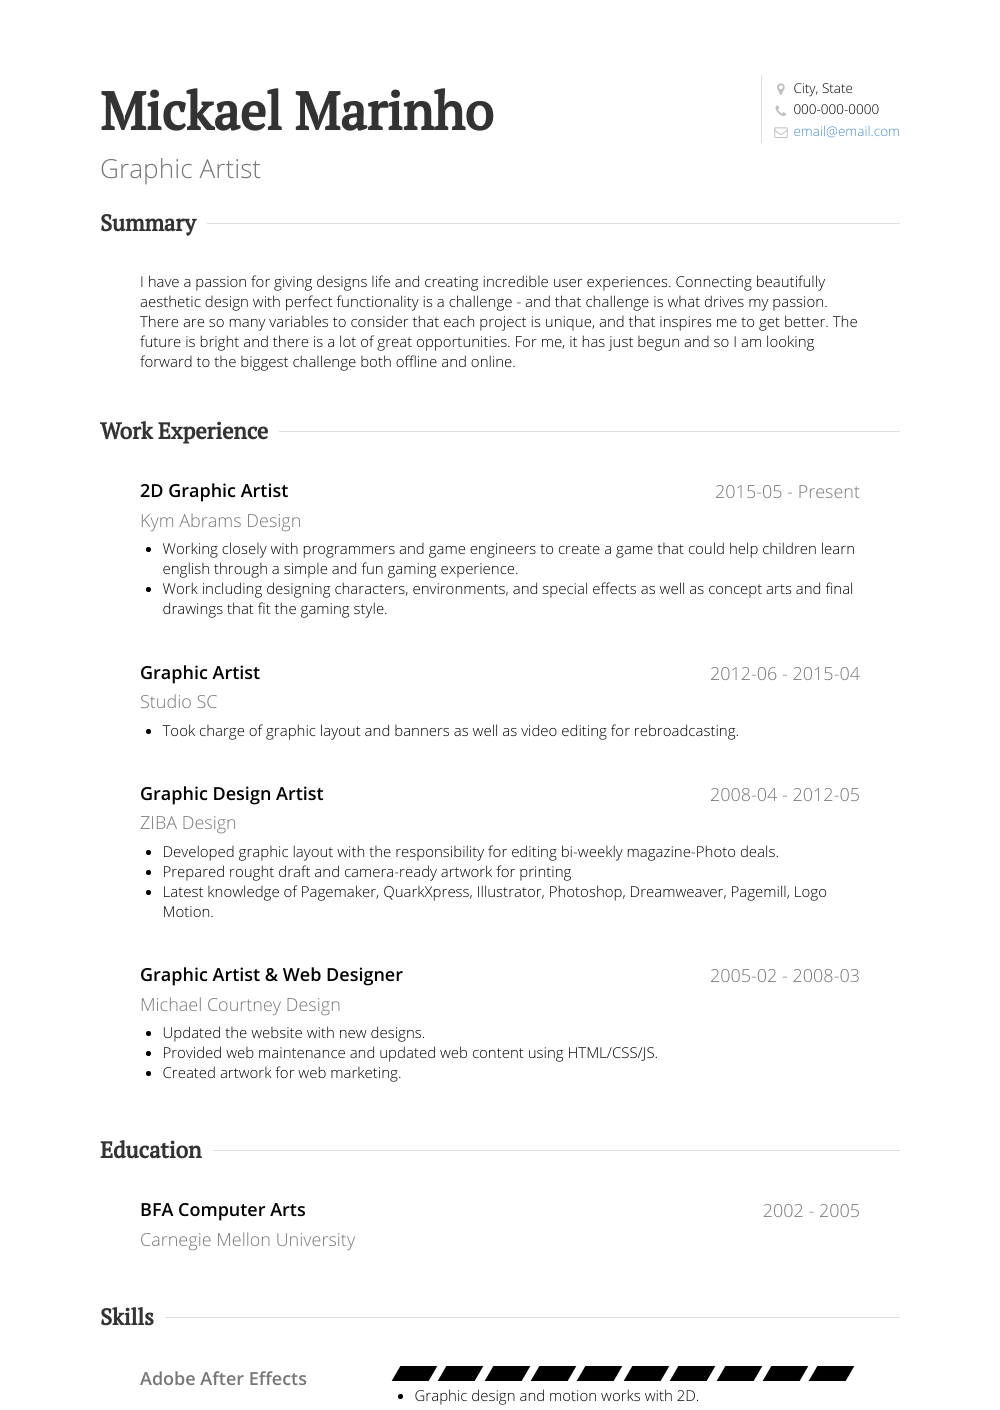 Graphic Artist Resume Samples And Templates Visualcv